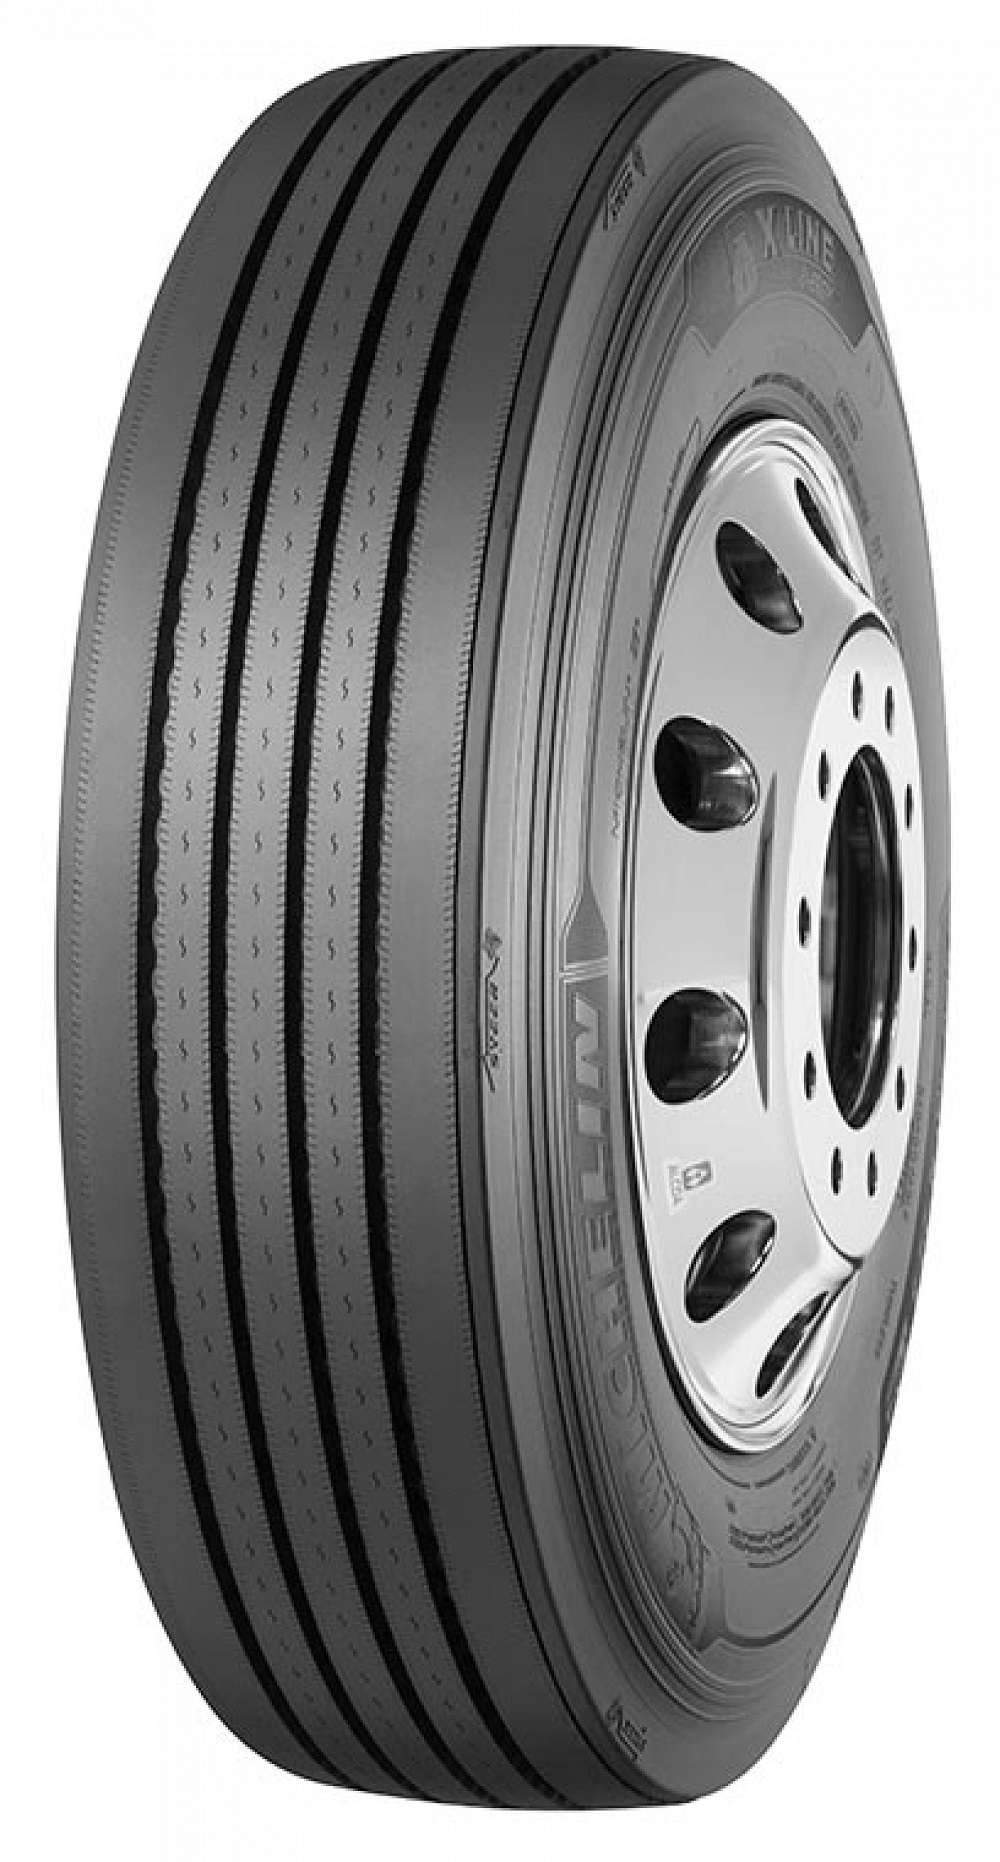 295/60 R22.5 143/141J Michelin X LINE ENERGY Z